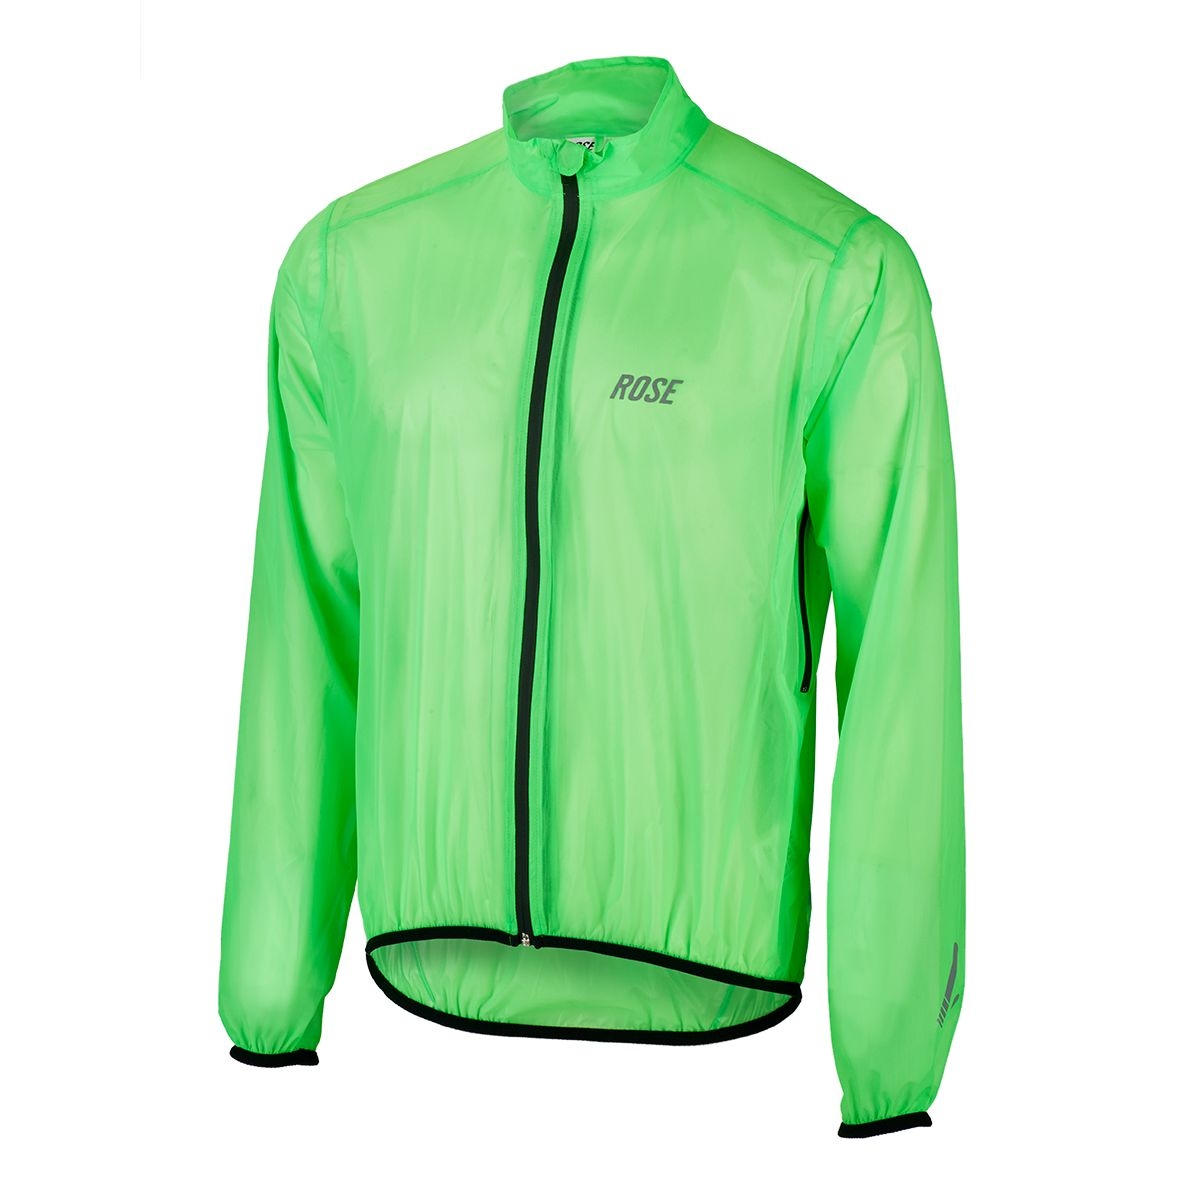 PERFORMANCE III waterproof jacket